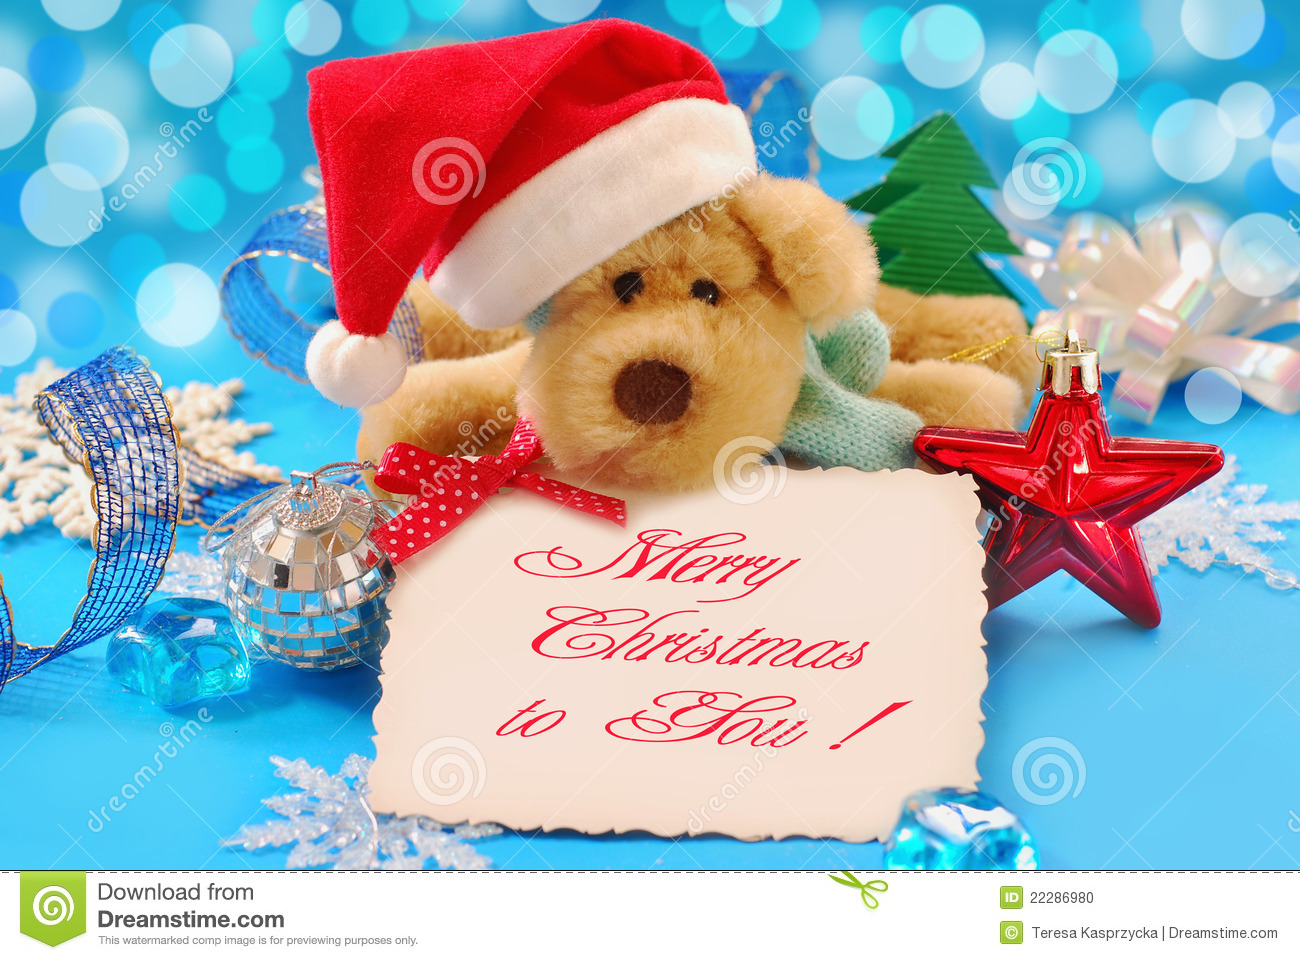 Sweet christmas greetings stock photo. Image of life - 22286980